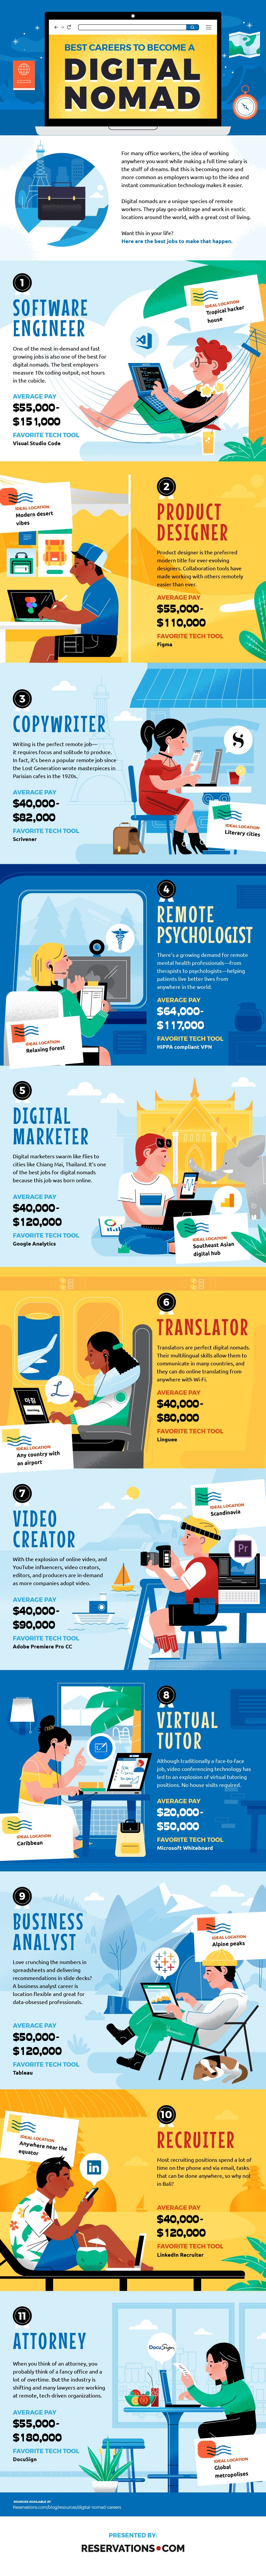 Digital Nomad Careers Infographic